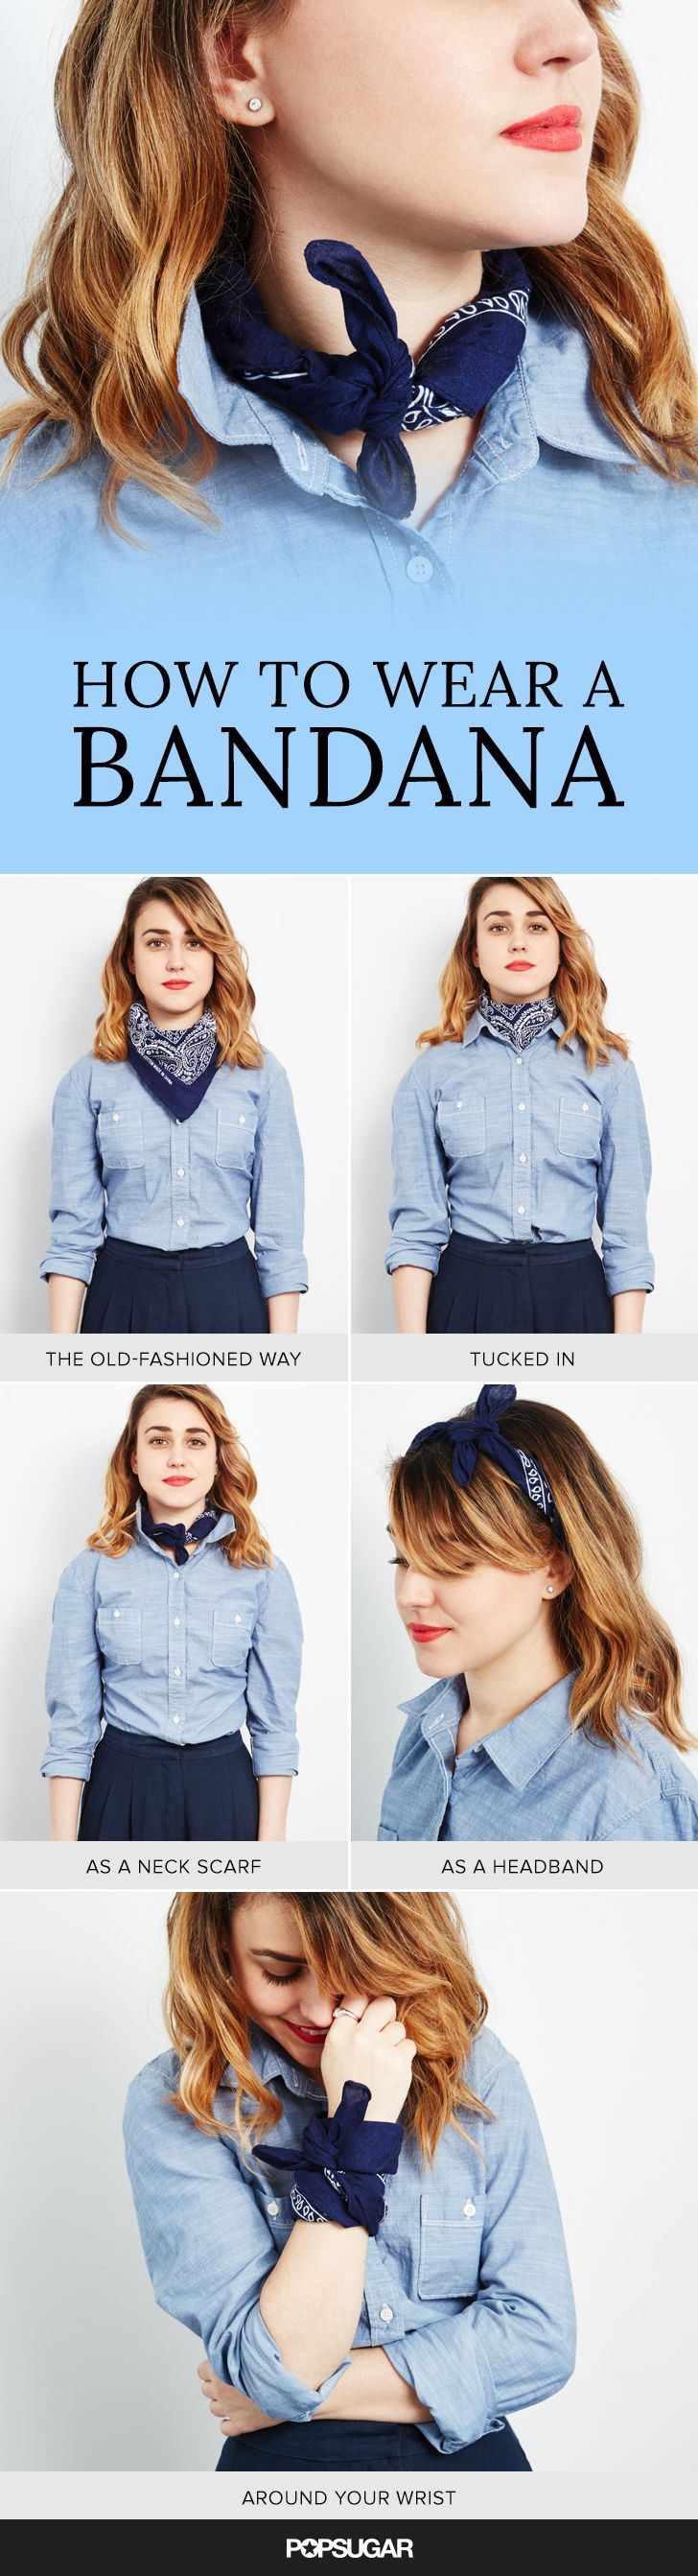 Bandanas add that little something extra and can turn even the simplest outfits into standout ensembles. And with the trend having been spotted on both the Fall 2015 runways and our favorite bloggers, it's probably time to hop on board. Here are all the ways you can wear this surprisingly versatile piece of material.